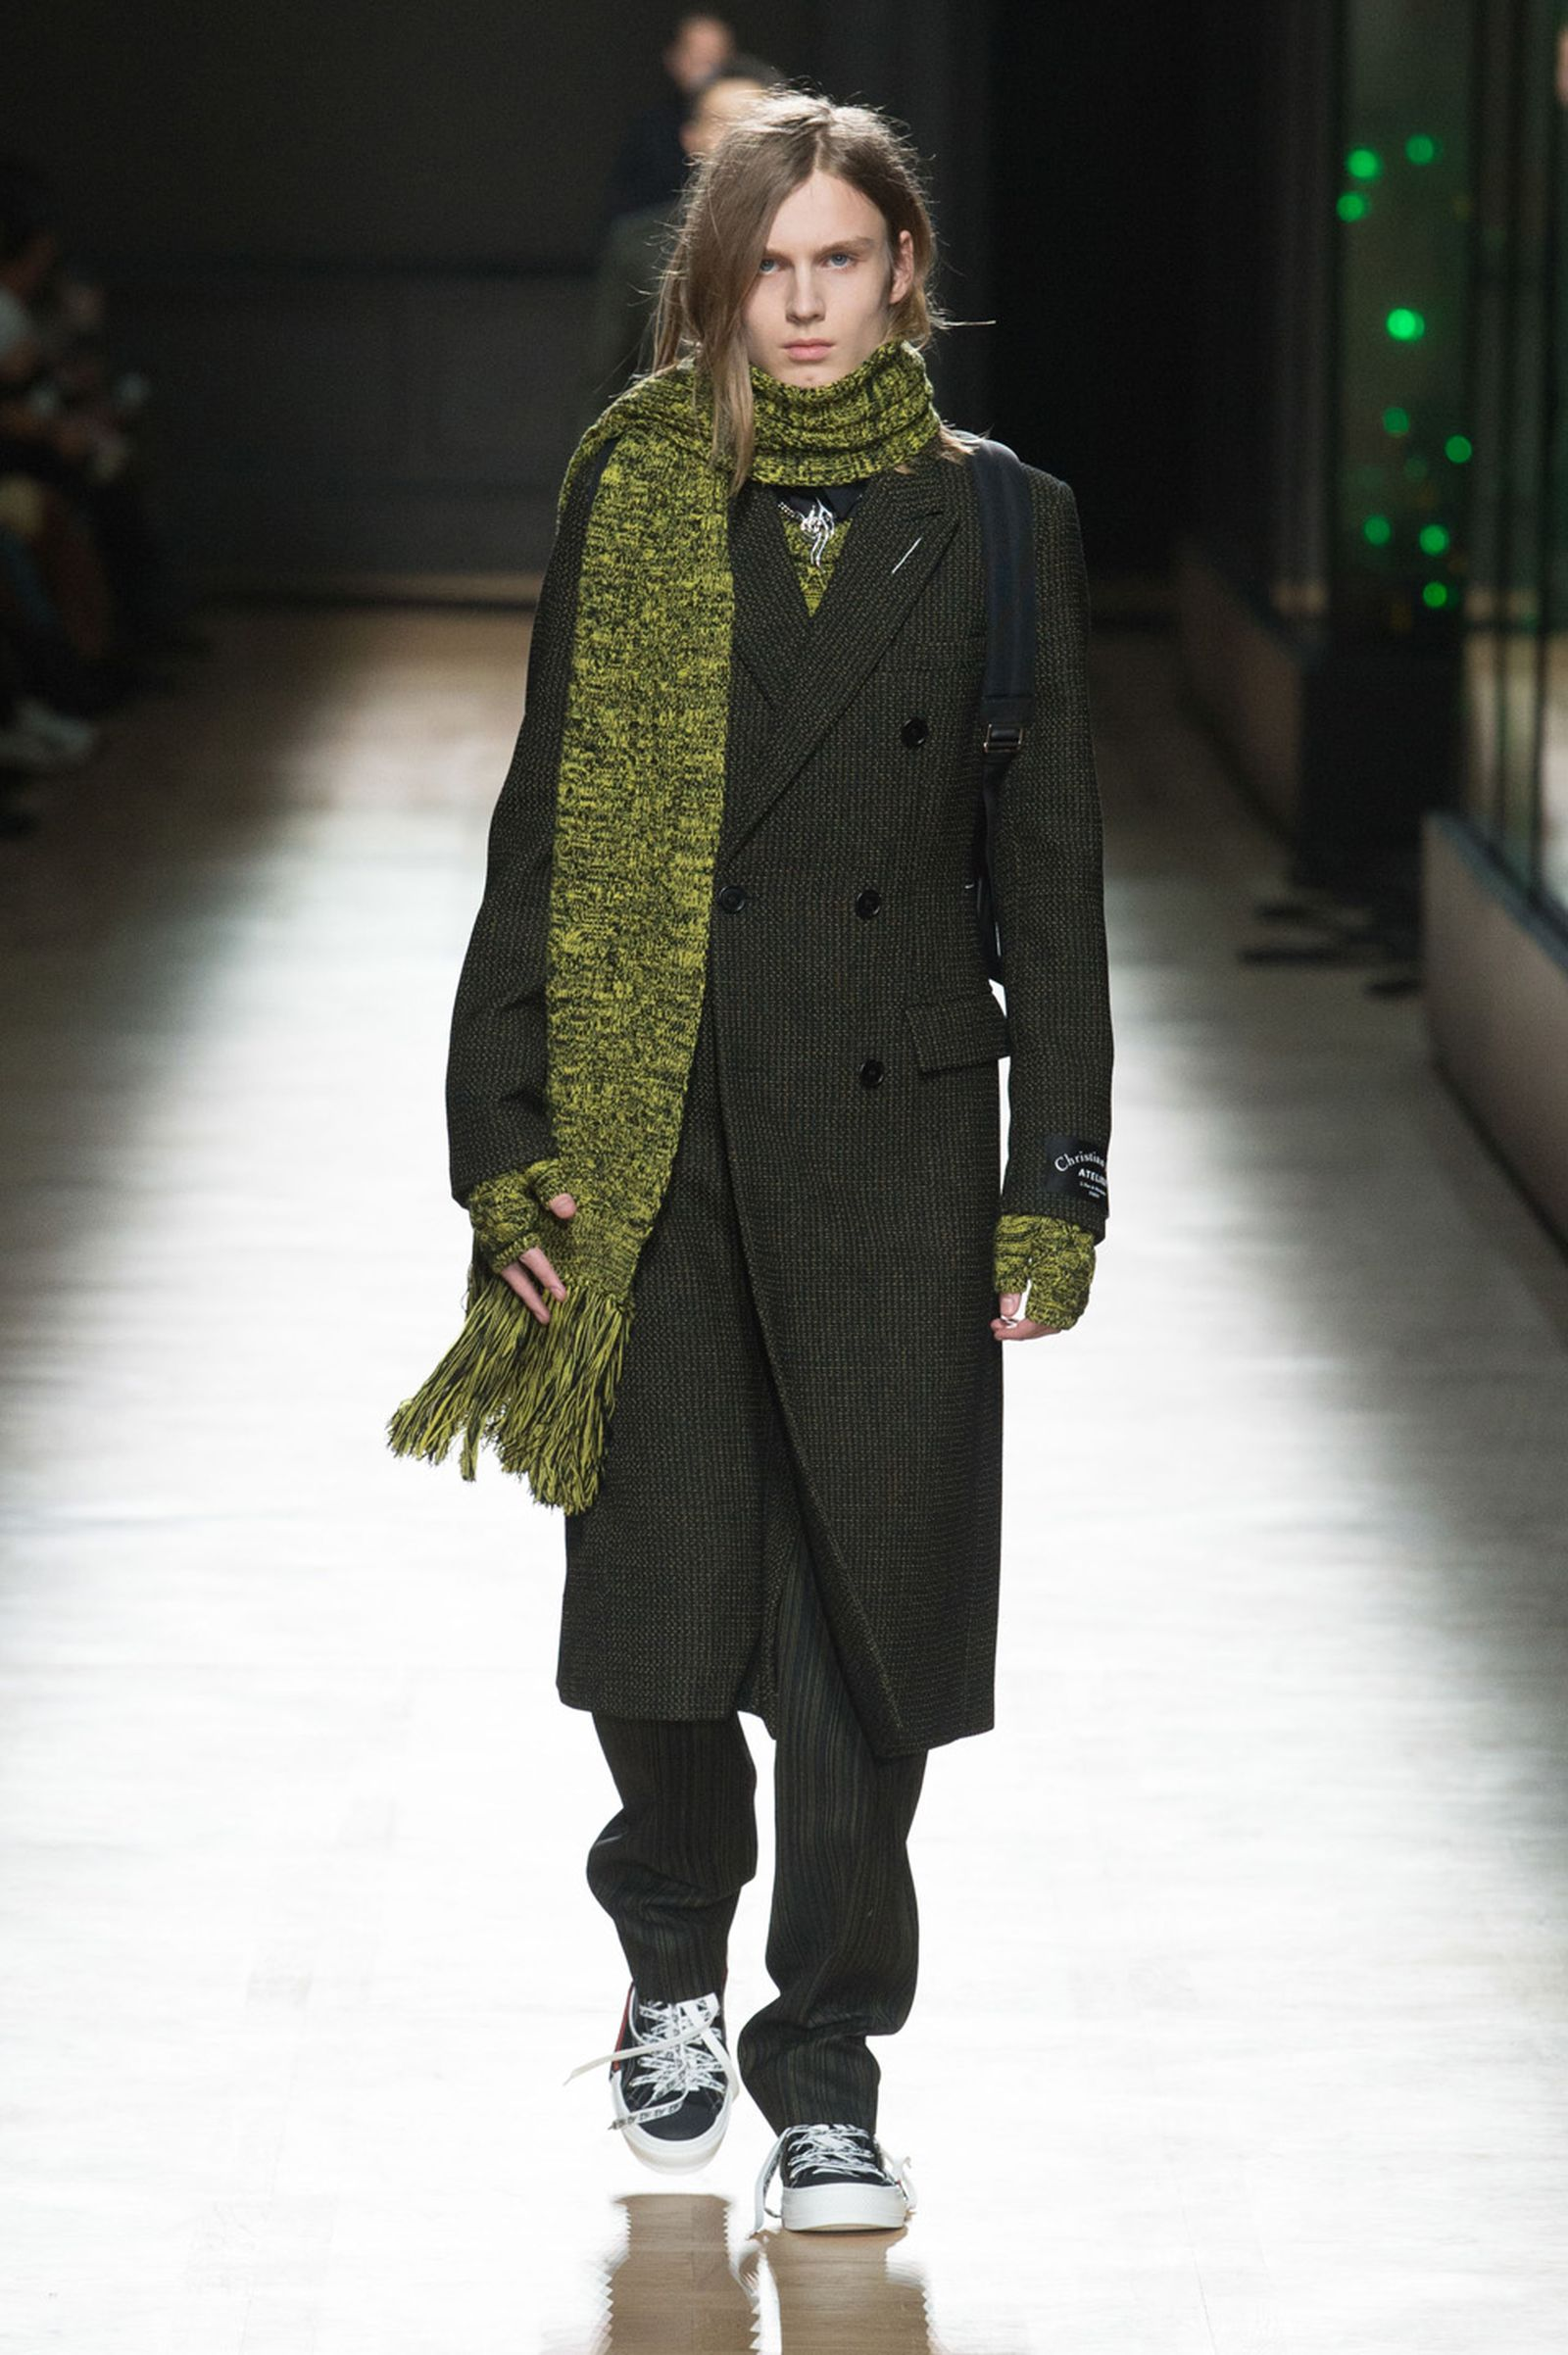 DIOR HOMME WINTER 18 19 BY PATRICE STABLE look41 Fall/WInter 2018 runway